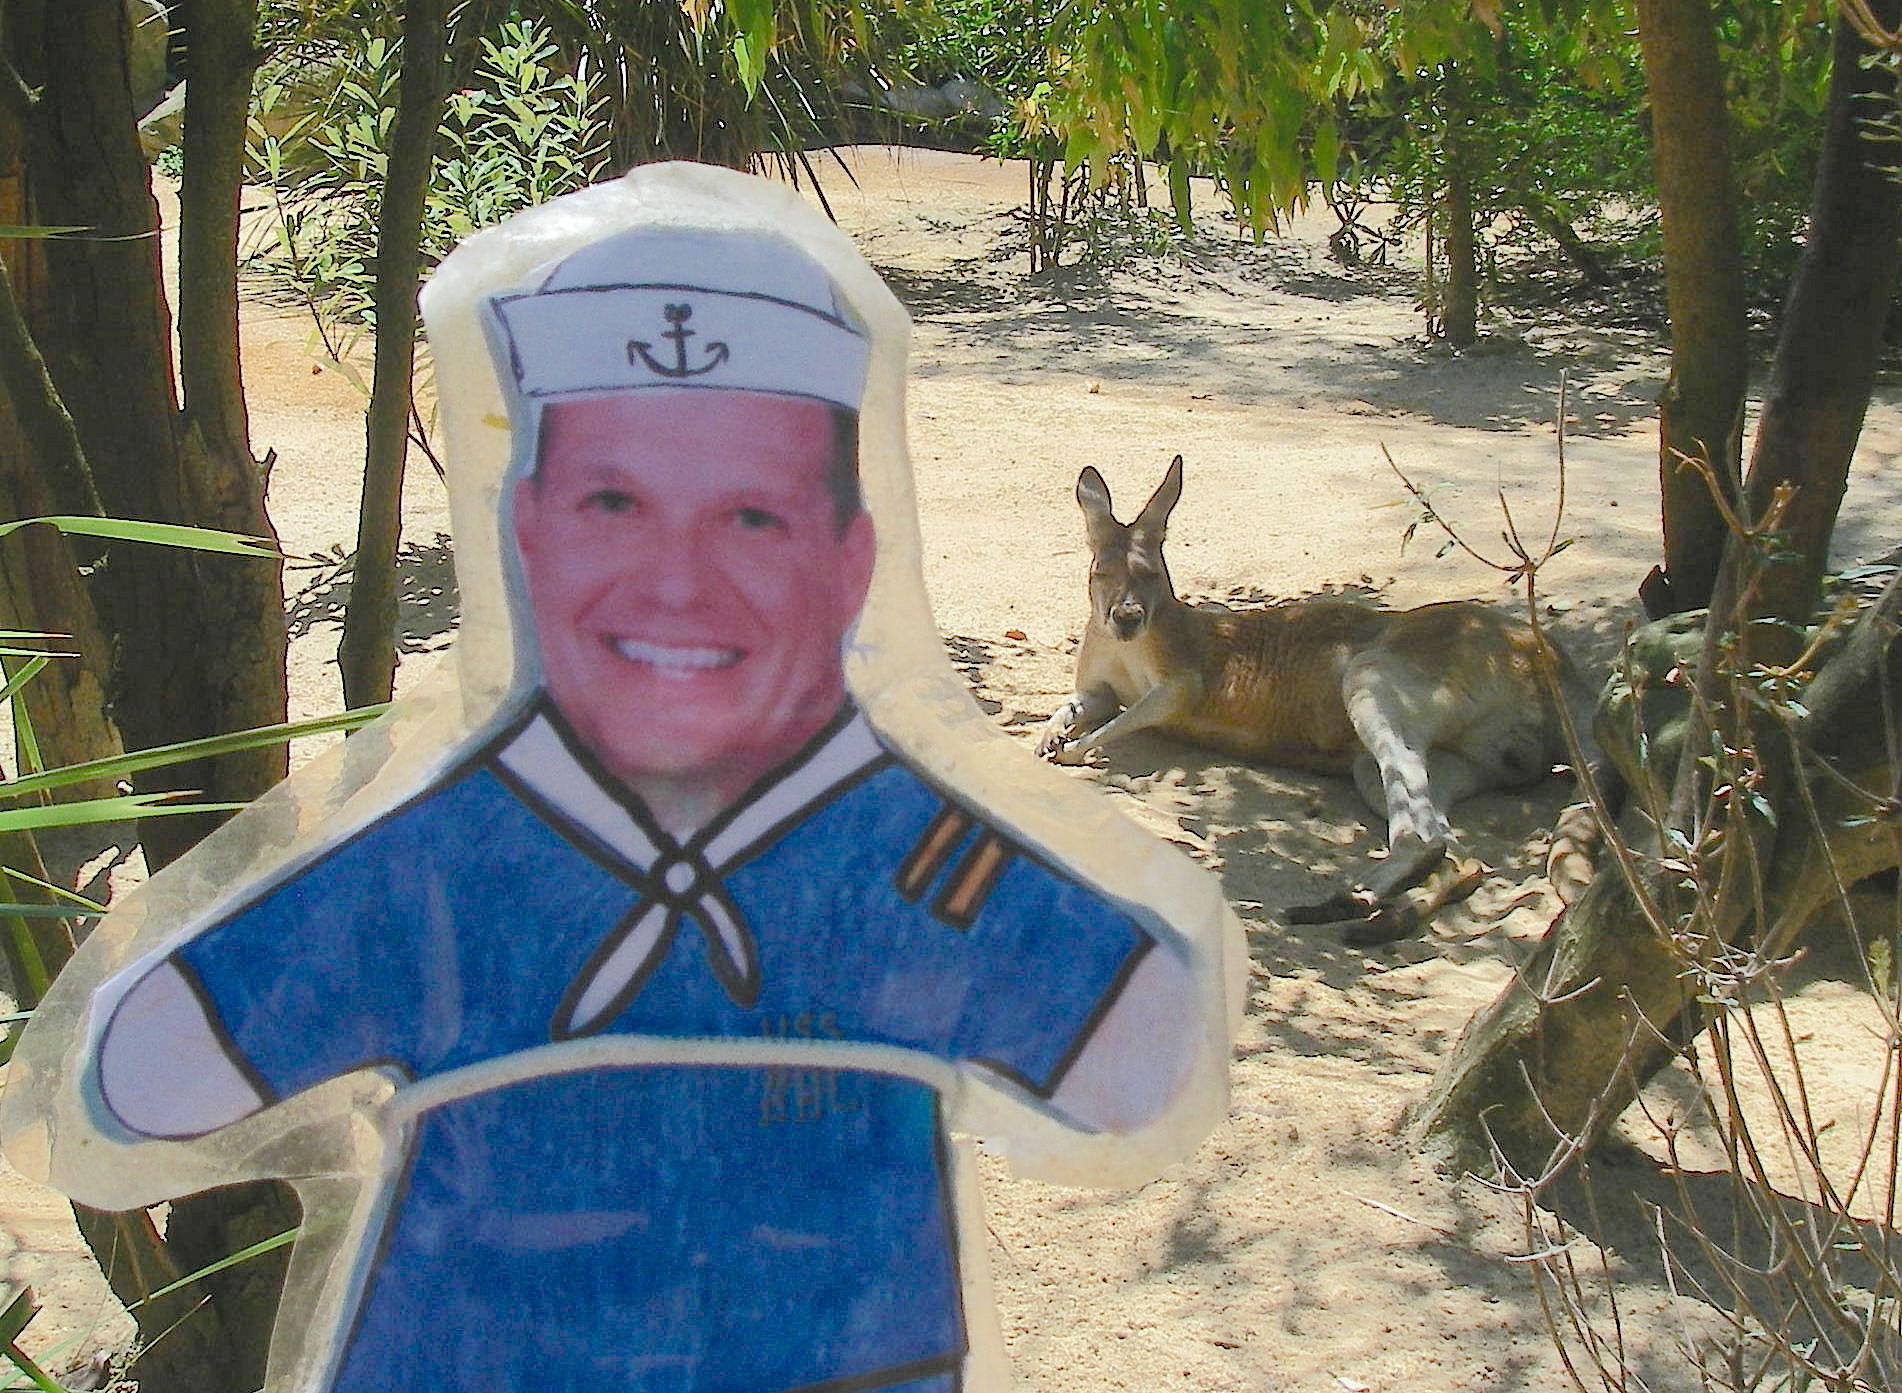 58.3.1. Flat Mr. Davis saw a kangaroo at the Taronga Zoo in Sydney in November 2015